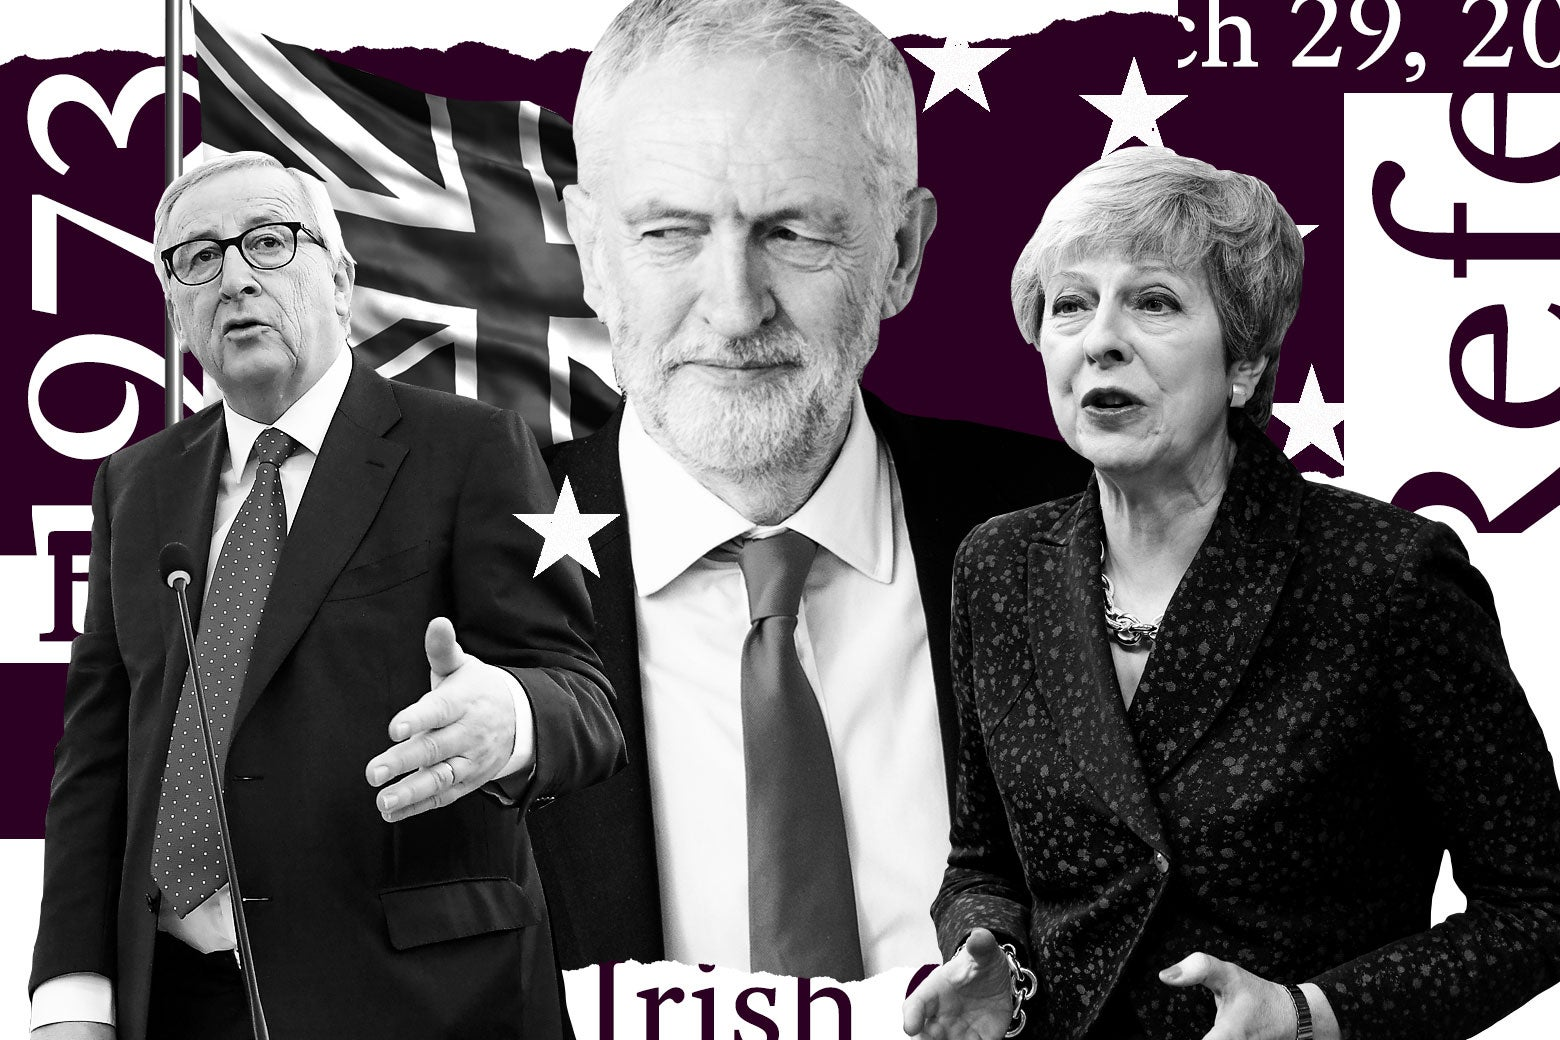 "Photo illustration of European Commission President Jean-Claude Juncker, Labour Party leader Jeremy Corbyn, and U.K. Prime Minister Theresa May against a backdrop of the United Kingdom flag and several Brexit-related word cutouts, including ""Irish,"" ""1973,"" ""March 29, 2019,"" and ""Referendum."""